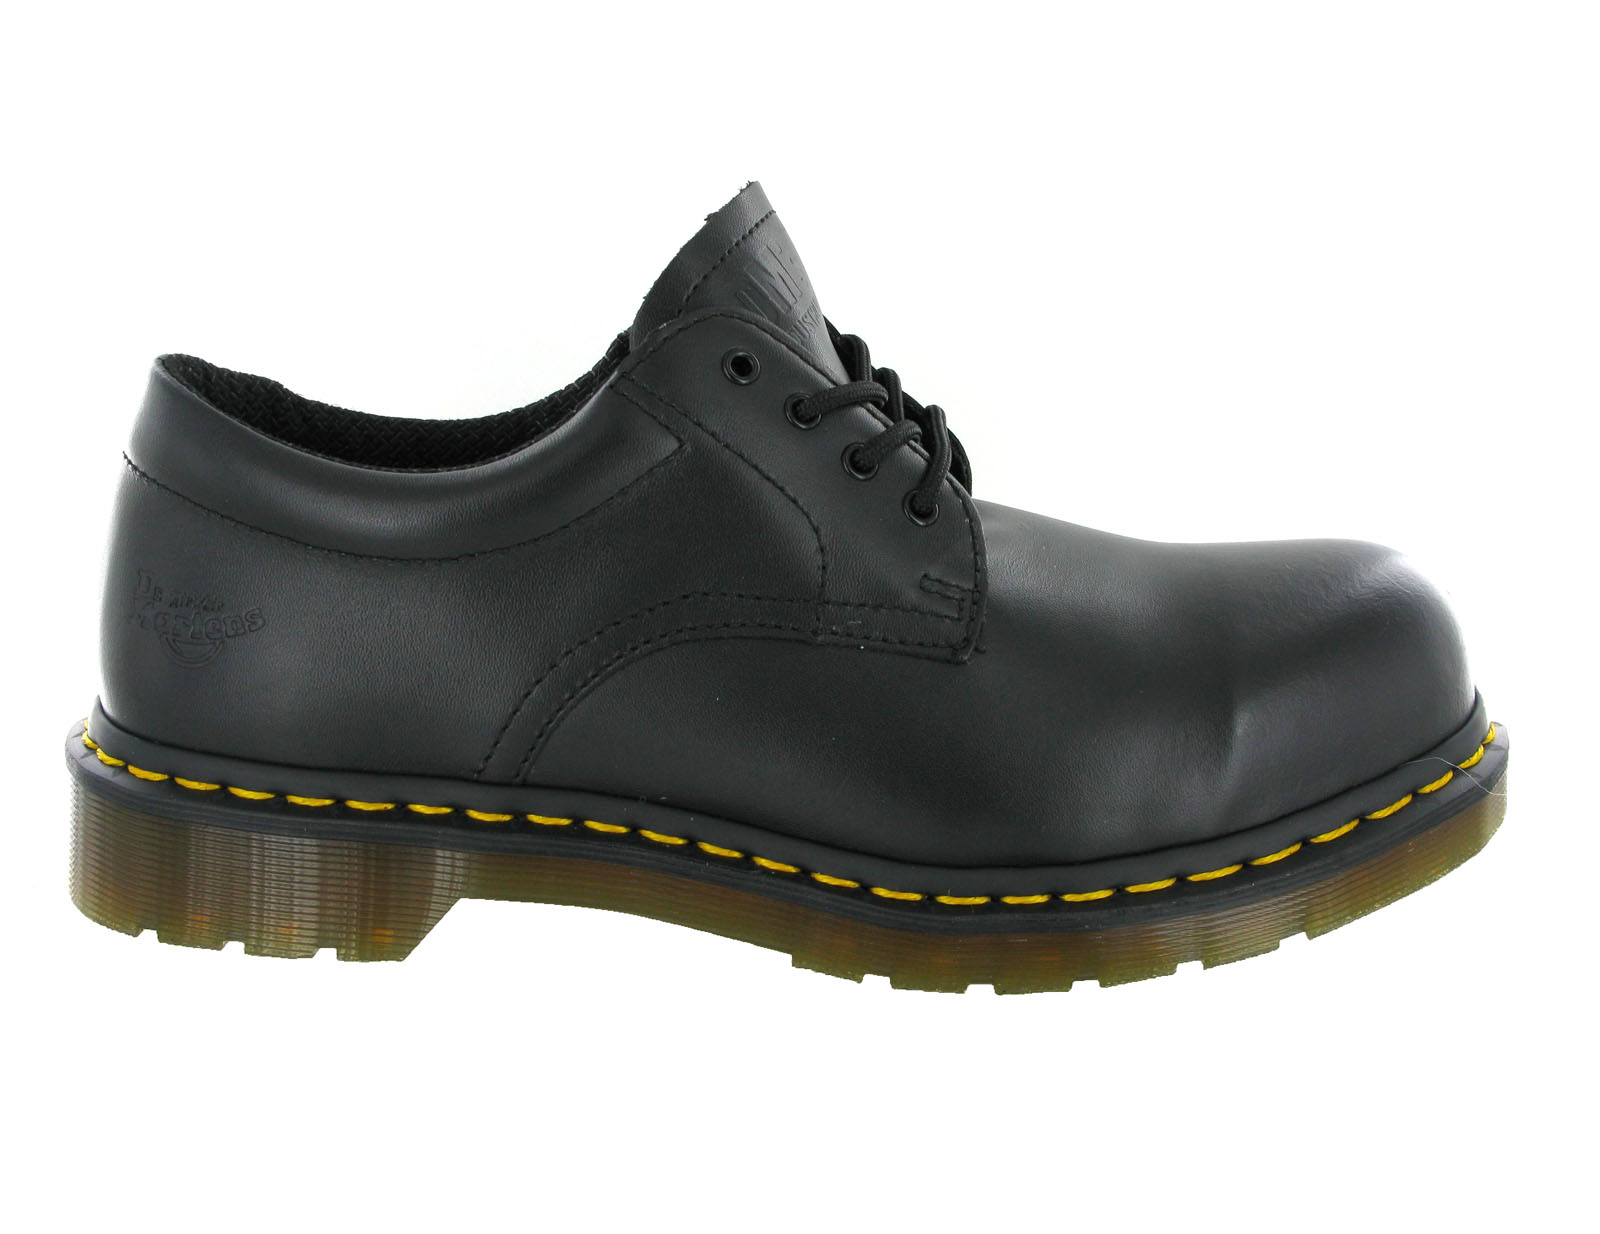 Mens-Dr-Martens-Steel-Toe-Cap-saftey-Black-4-Eye-Leather-Formal-Shoes-Size-6-13